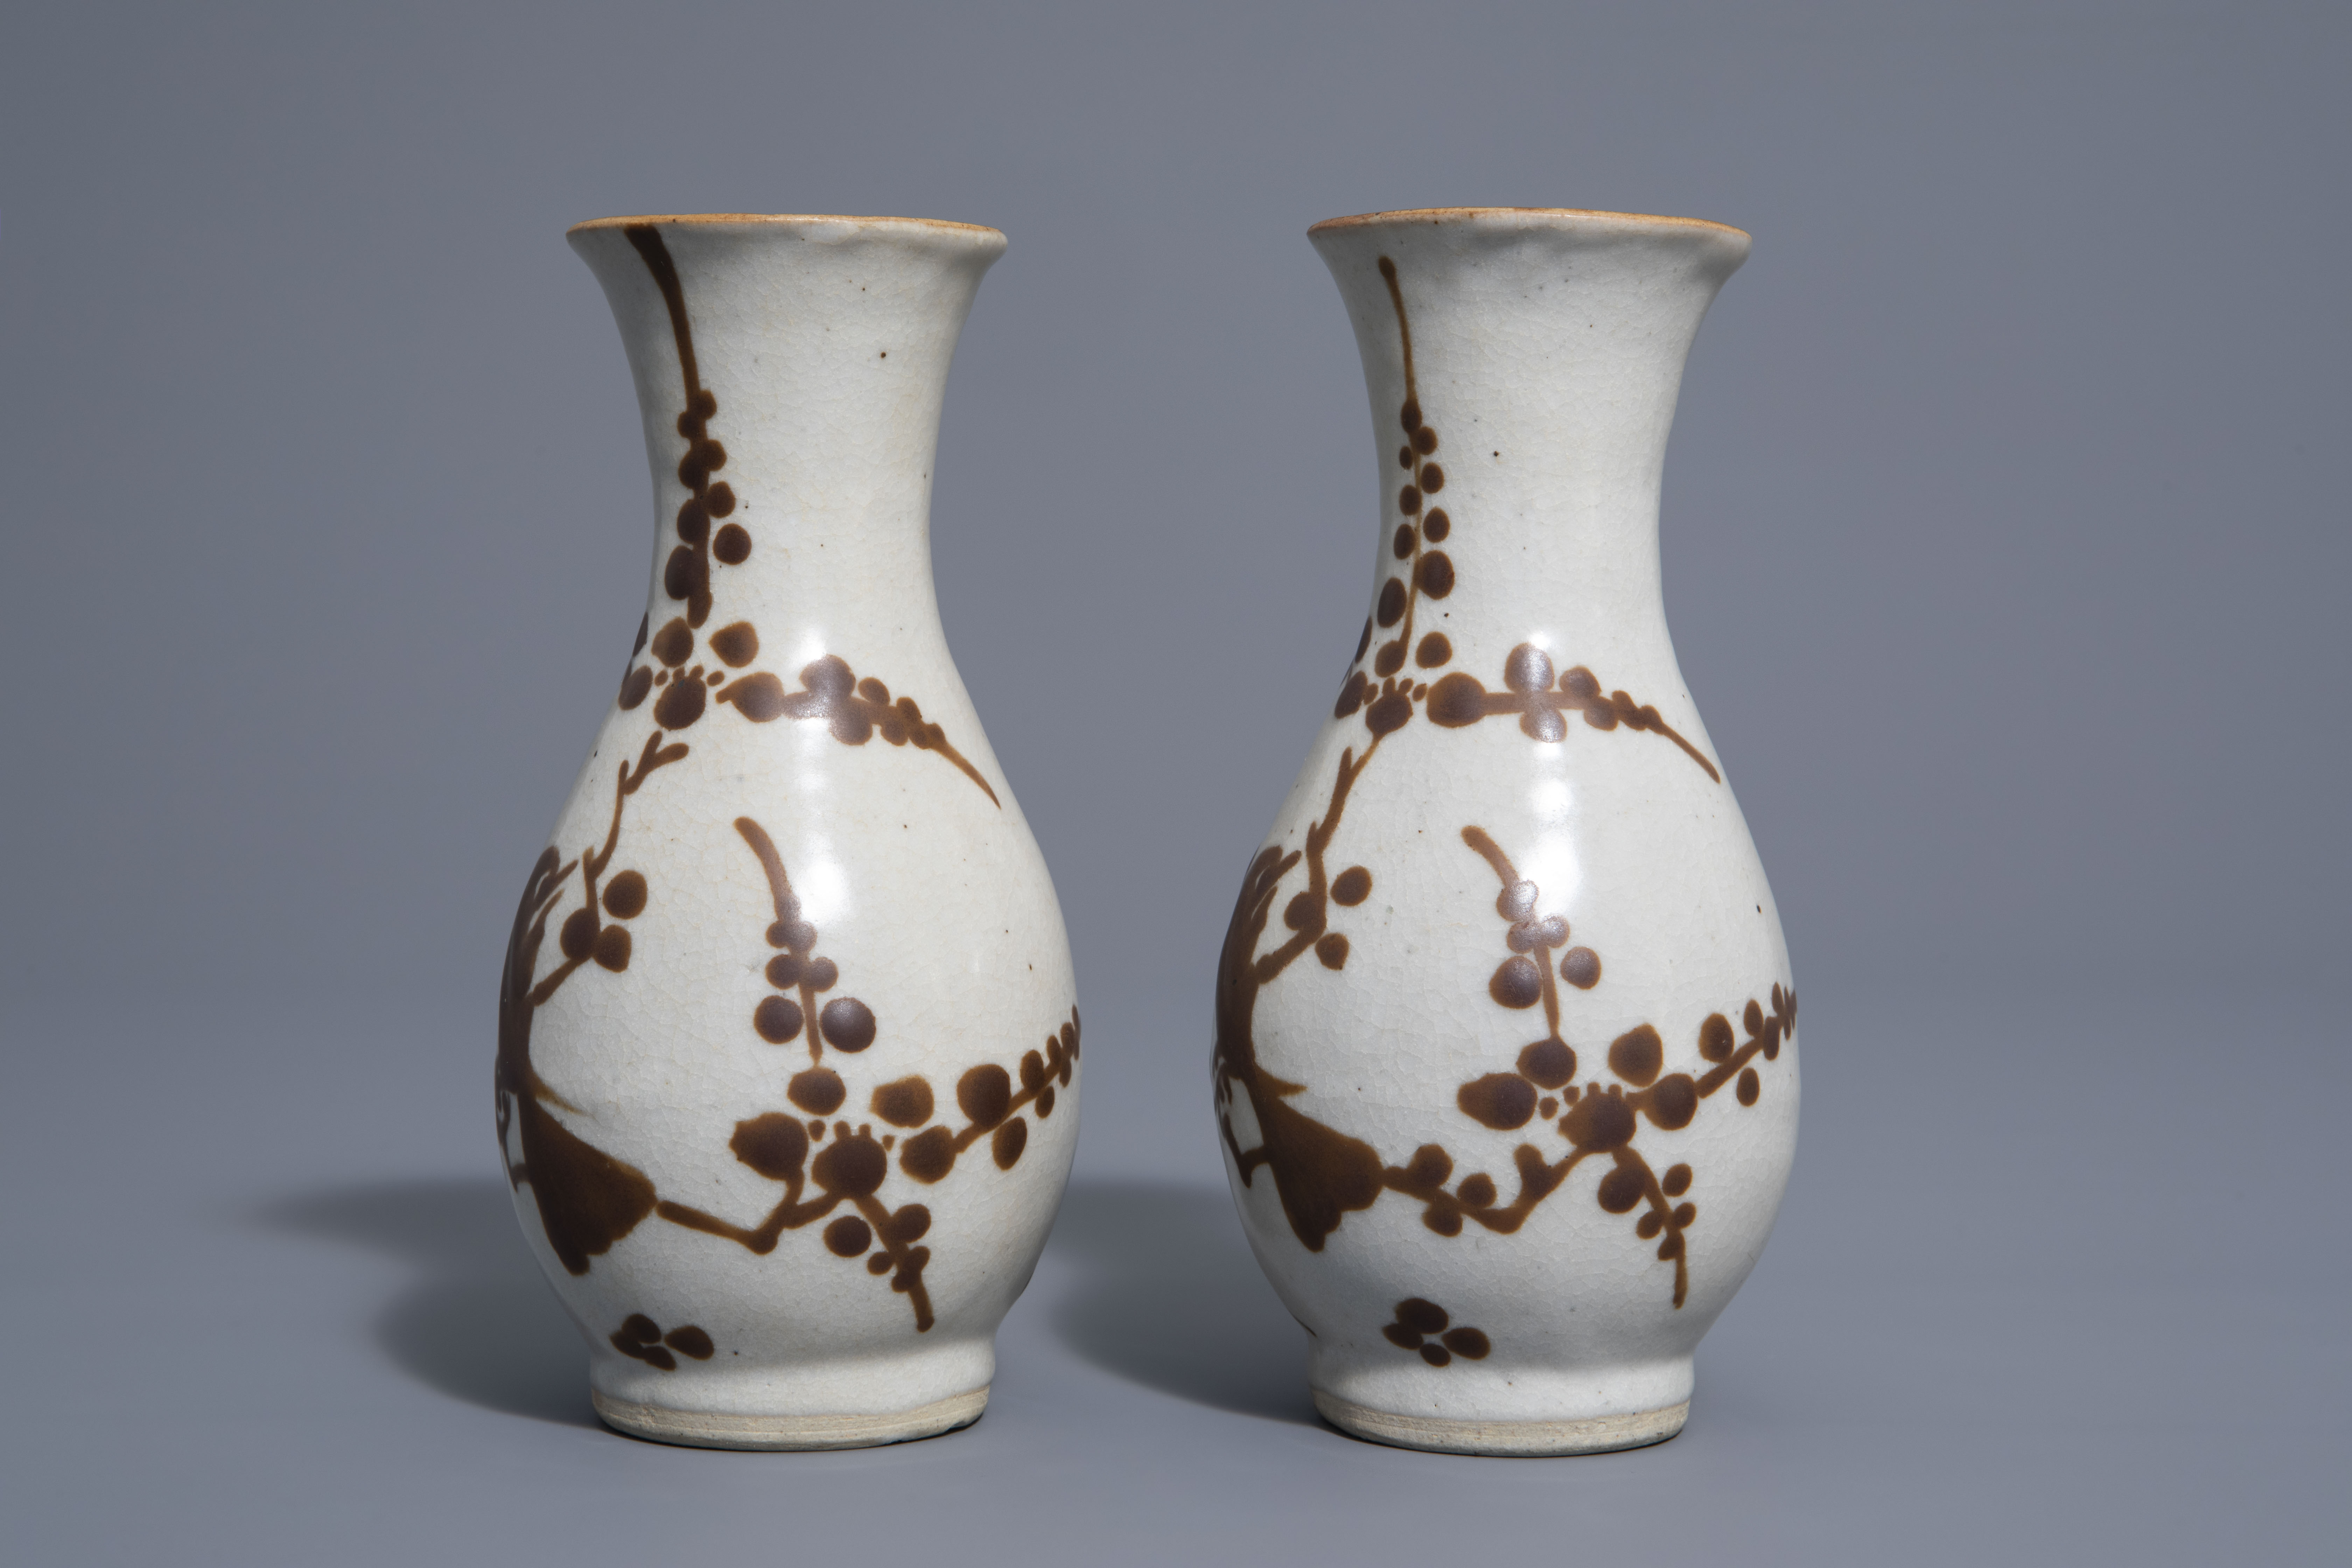 A pair of Chinese Cizhou style slip decorated vases with birds on blossoming branches, 19th C. - Image 5 of 7